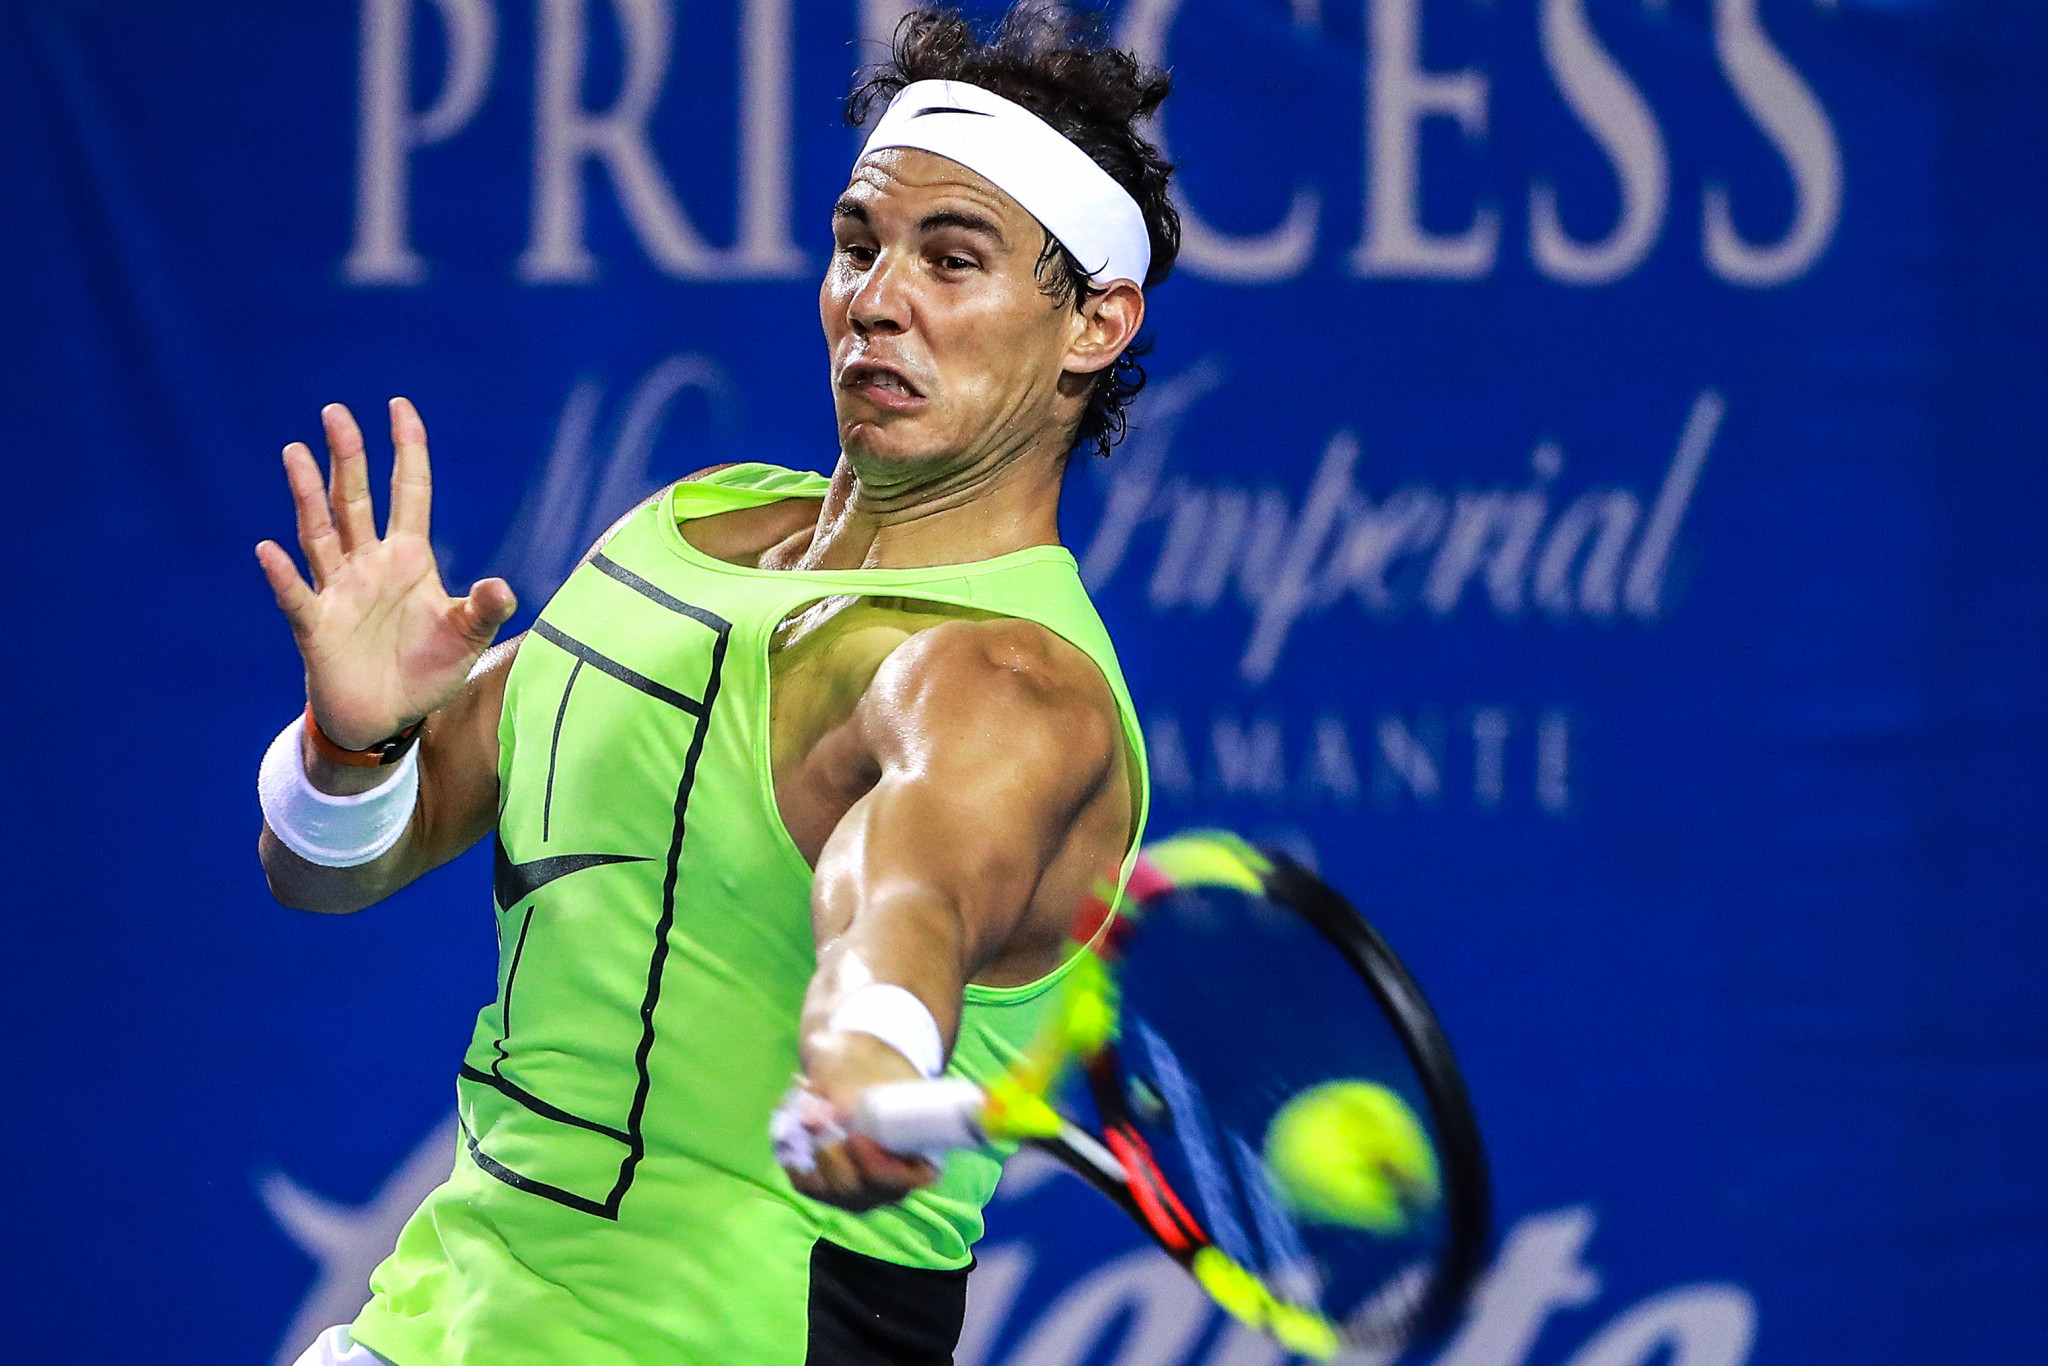 Nadal chasing 11th Monte Carlo Masters title as preparations begin for French Open